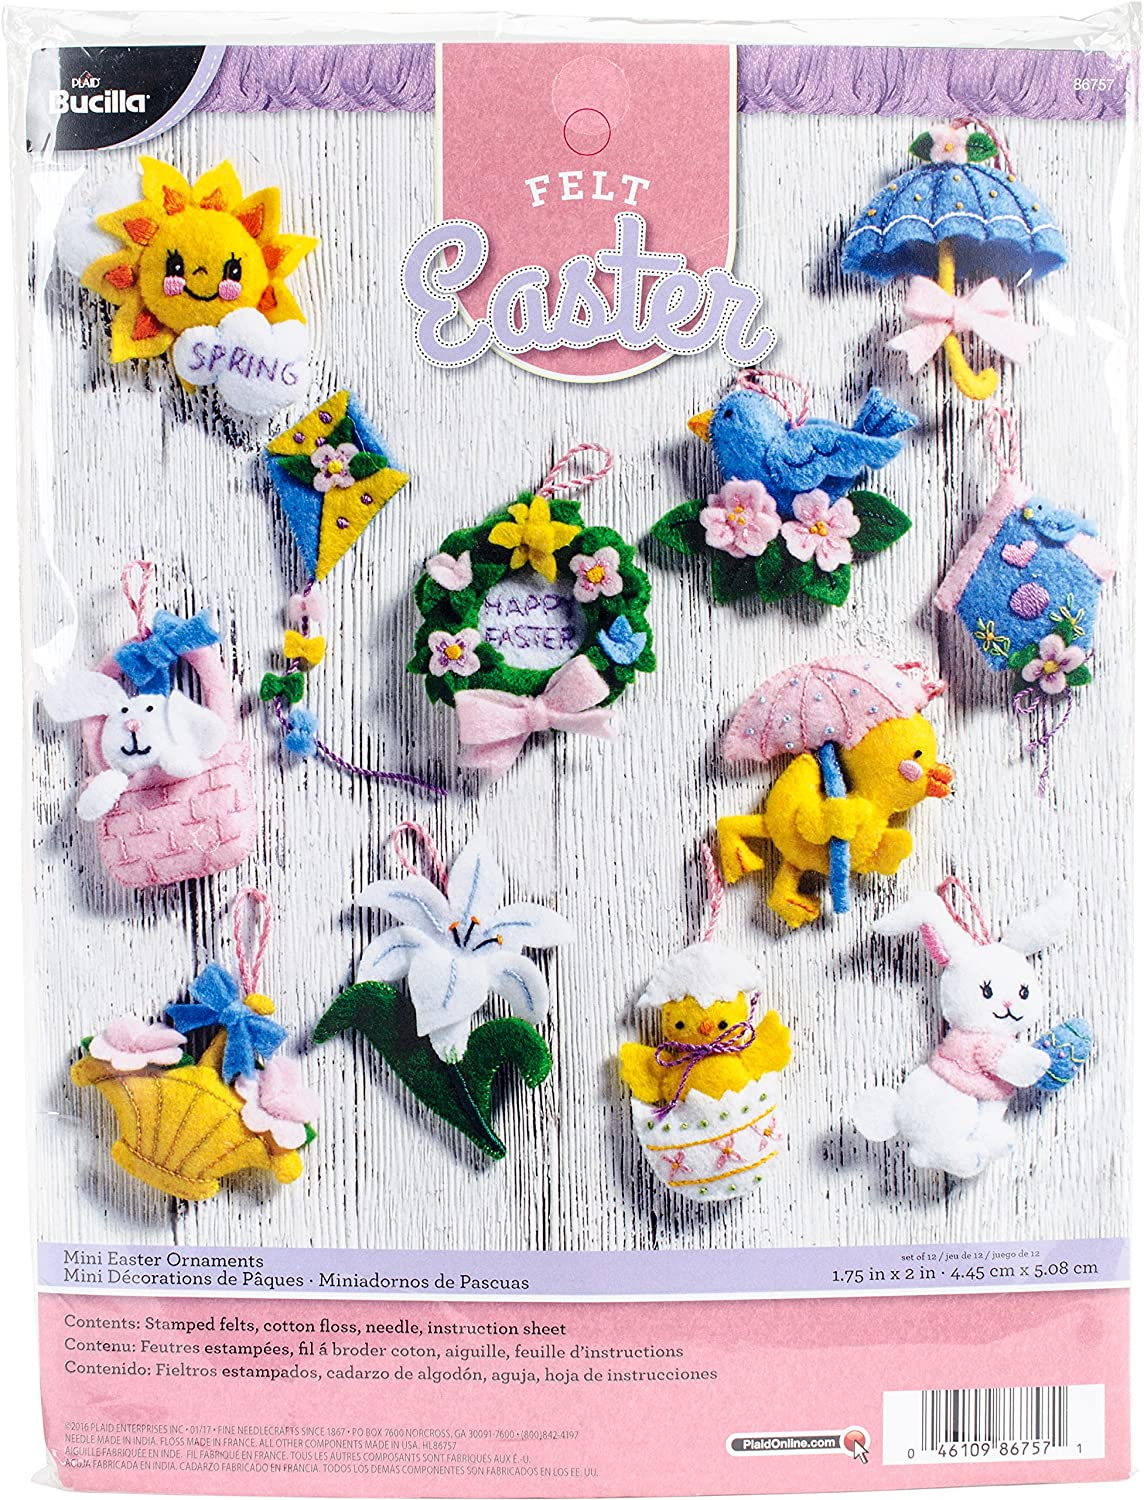 Bucilla Felt Applique Ornament Kit, 4 by 6-Inch, 86671 Trimming The Tree (Set of 6) Plaid Inc